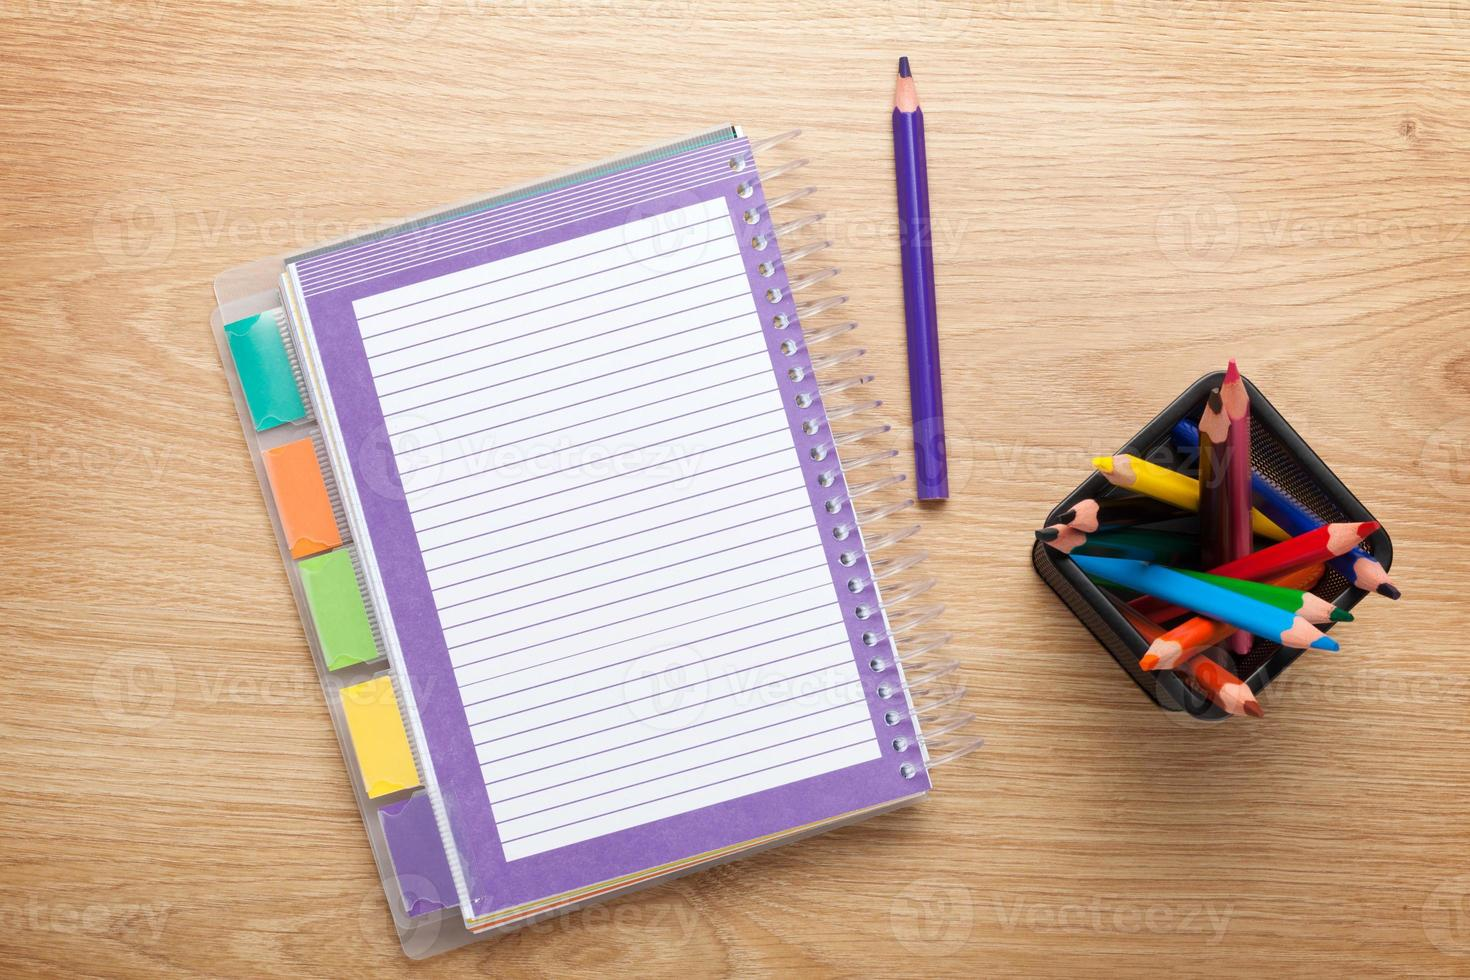 Office table with blank notepad and colorful pencils photo